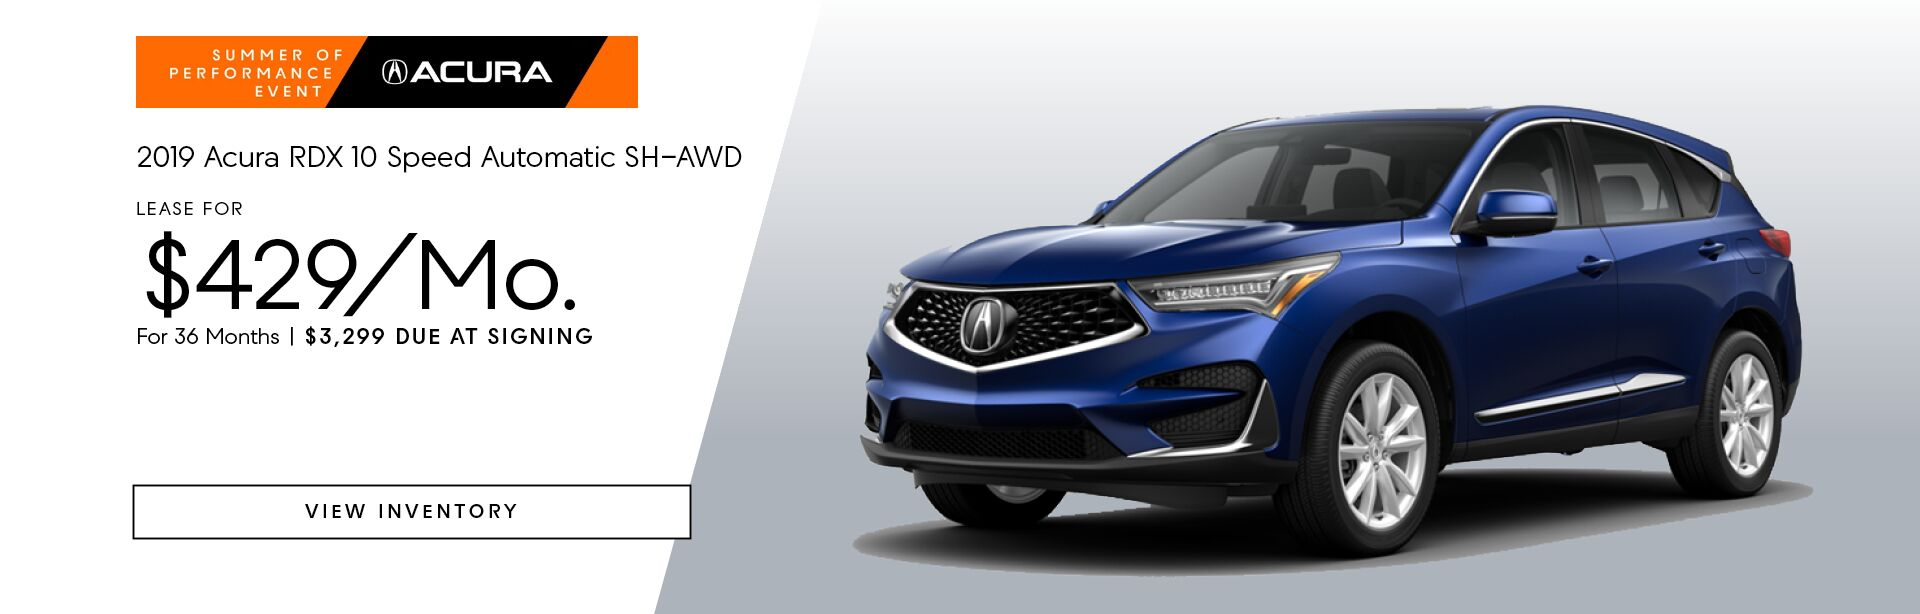 2019 Acura RDX 10 Speed Automatic SH-AWD